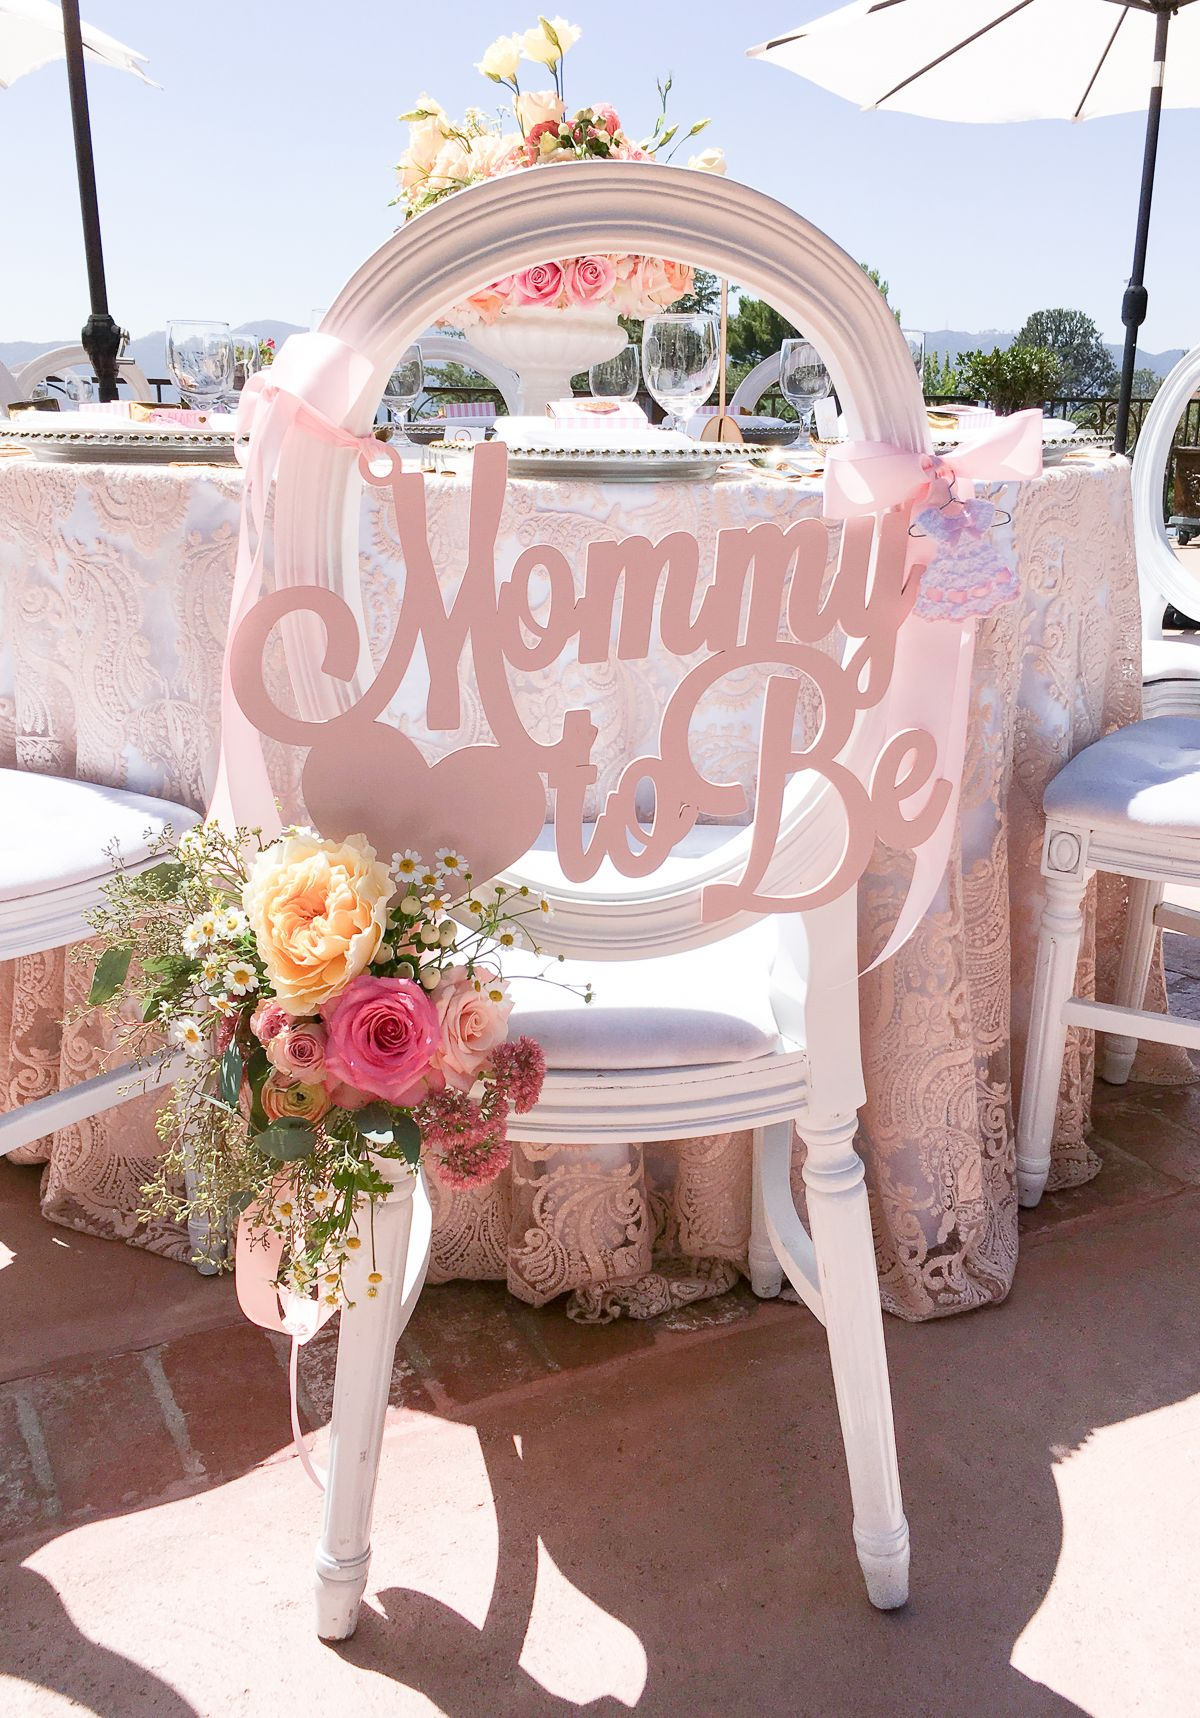 Decorating Chair For Baby Shower Leather And A Half Rocker Recliner Sign Mommy To Be Wooden Cutout In Custom